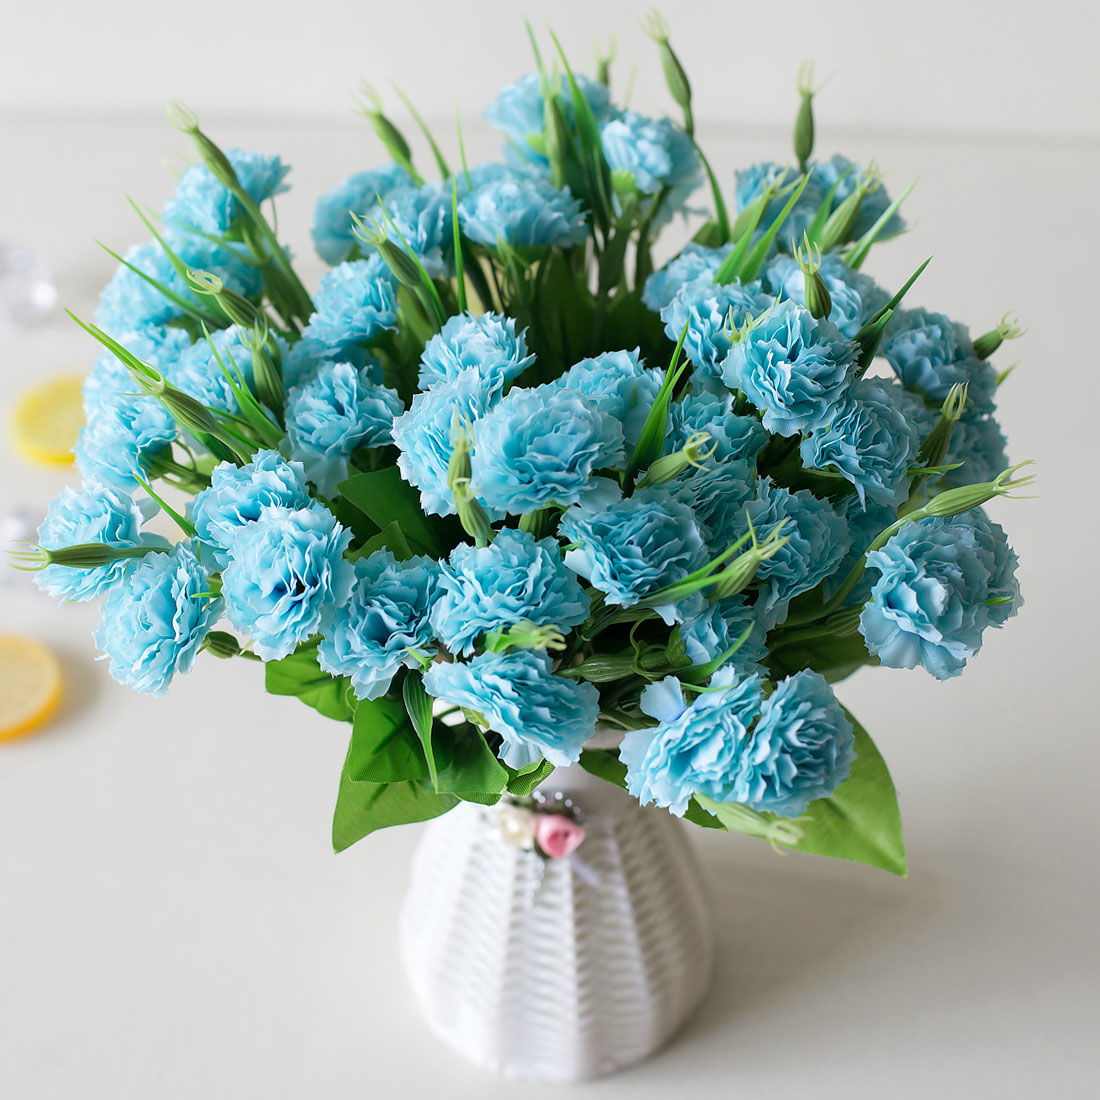 Mothers Day Gift 10 Heads 1 Bouquet Artificial Flowers Cheap